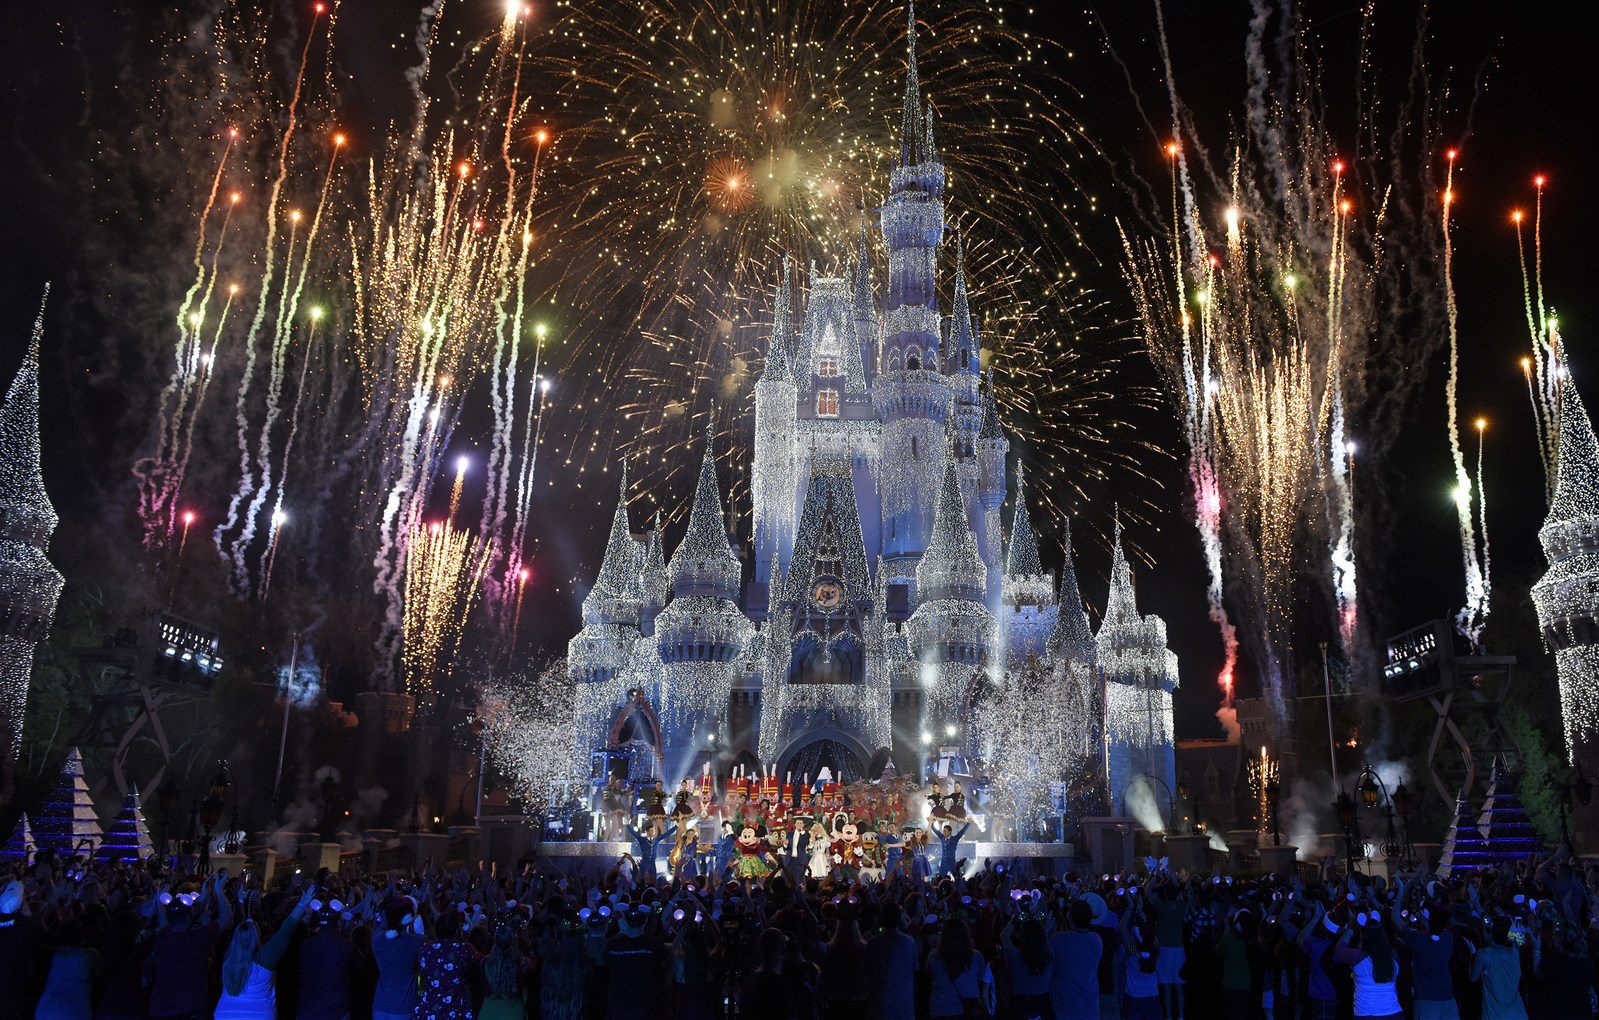 Disney Parks to Light Up ABC's Primetime Special 'The Wonderful World of Disney: Magical Holiday Celebration' Nov. 30